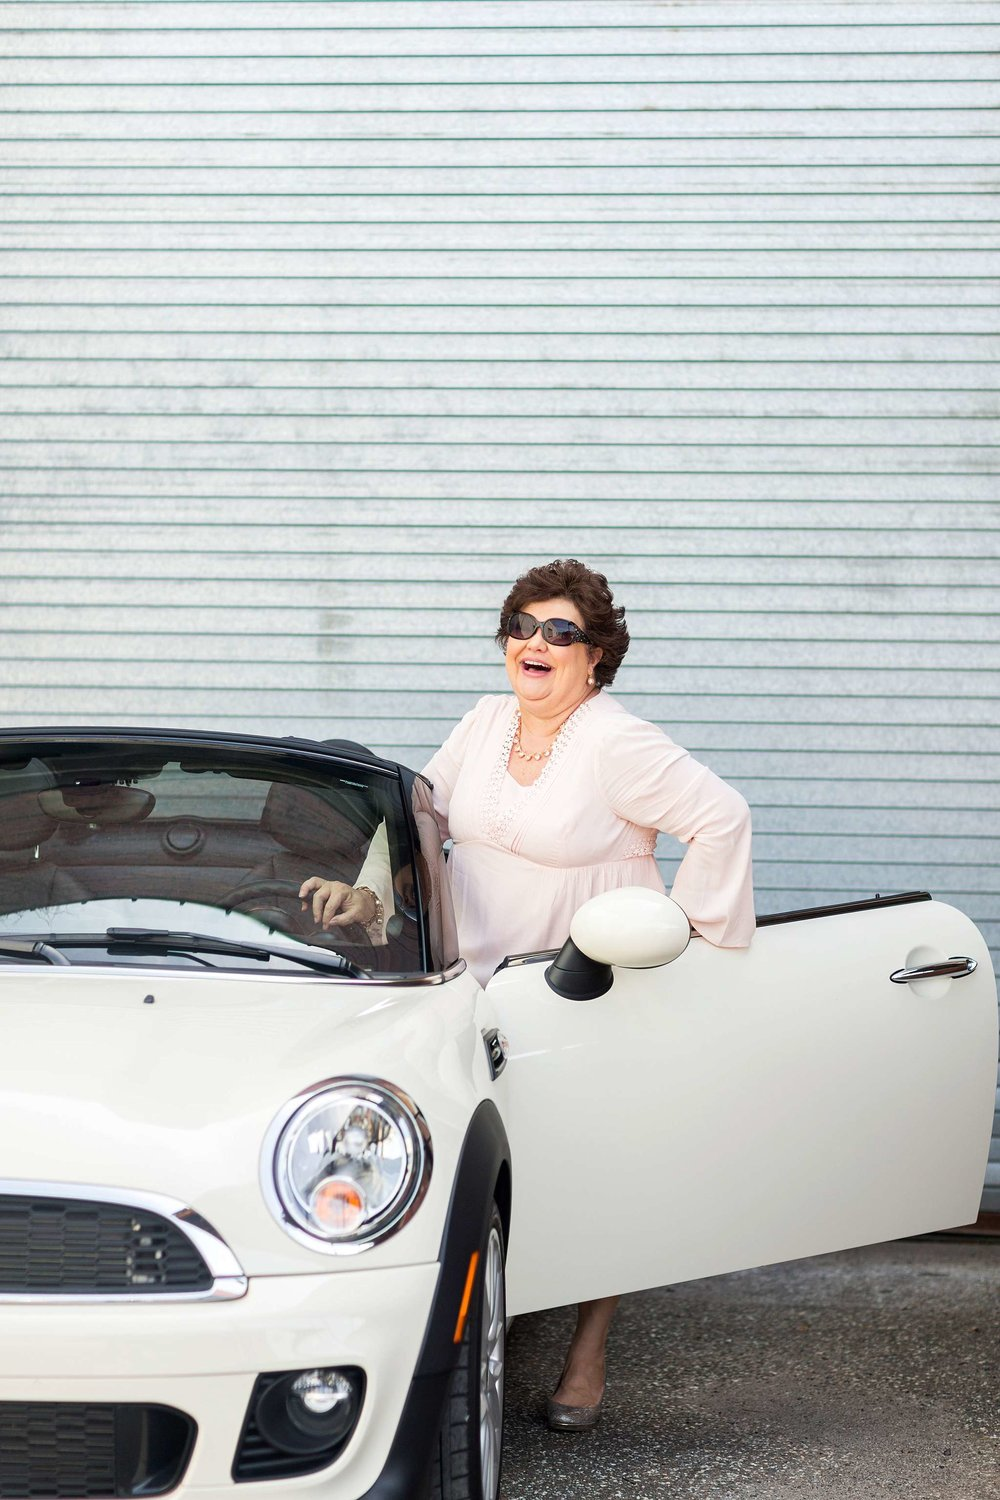 How adorable is Tanya in her Mini Cooper in this photo taken by Bri of Bri Cibene Photography!